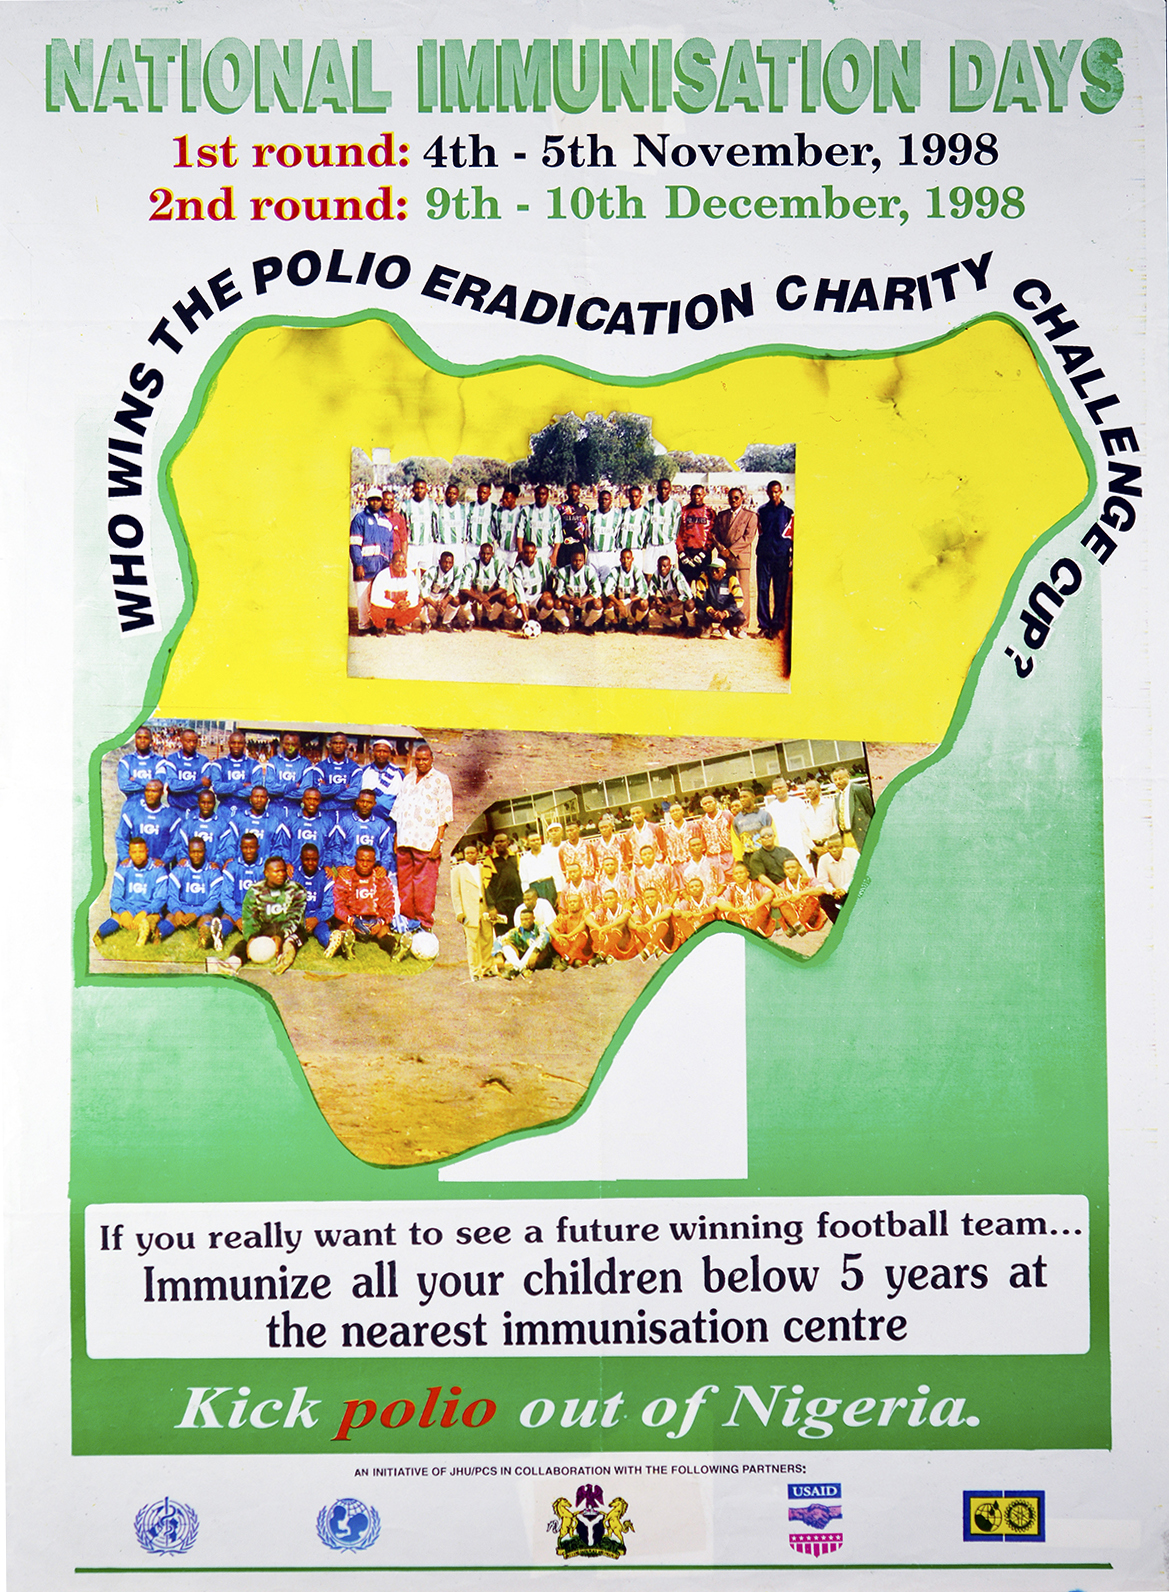 the importance of immunization in nigeria I have discussed the example of measles in a previous dean's notefor today's note, i focus primarily on the utility of vaccines themselves, their history, and the importance of vaccines in safeguarding the health of populations.